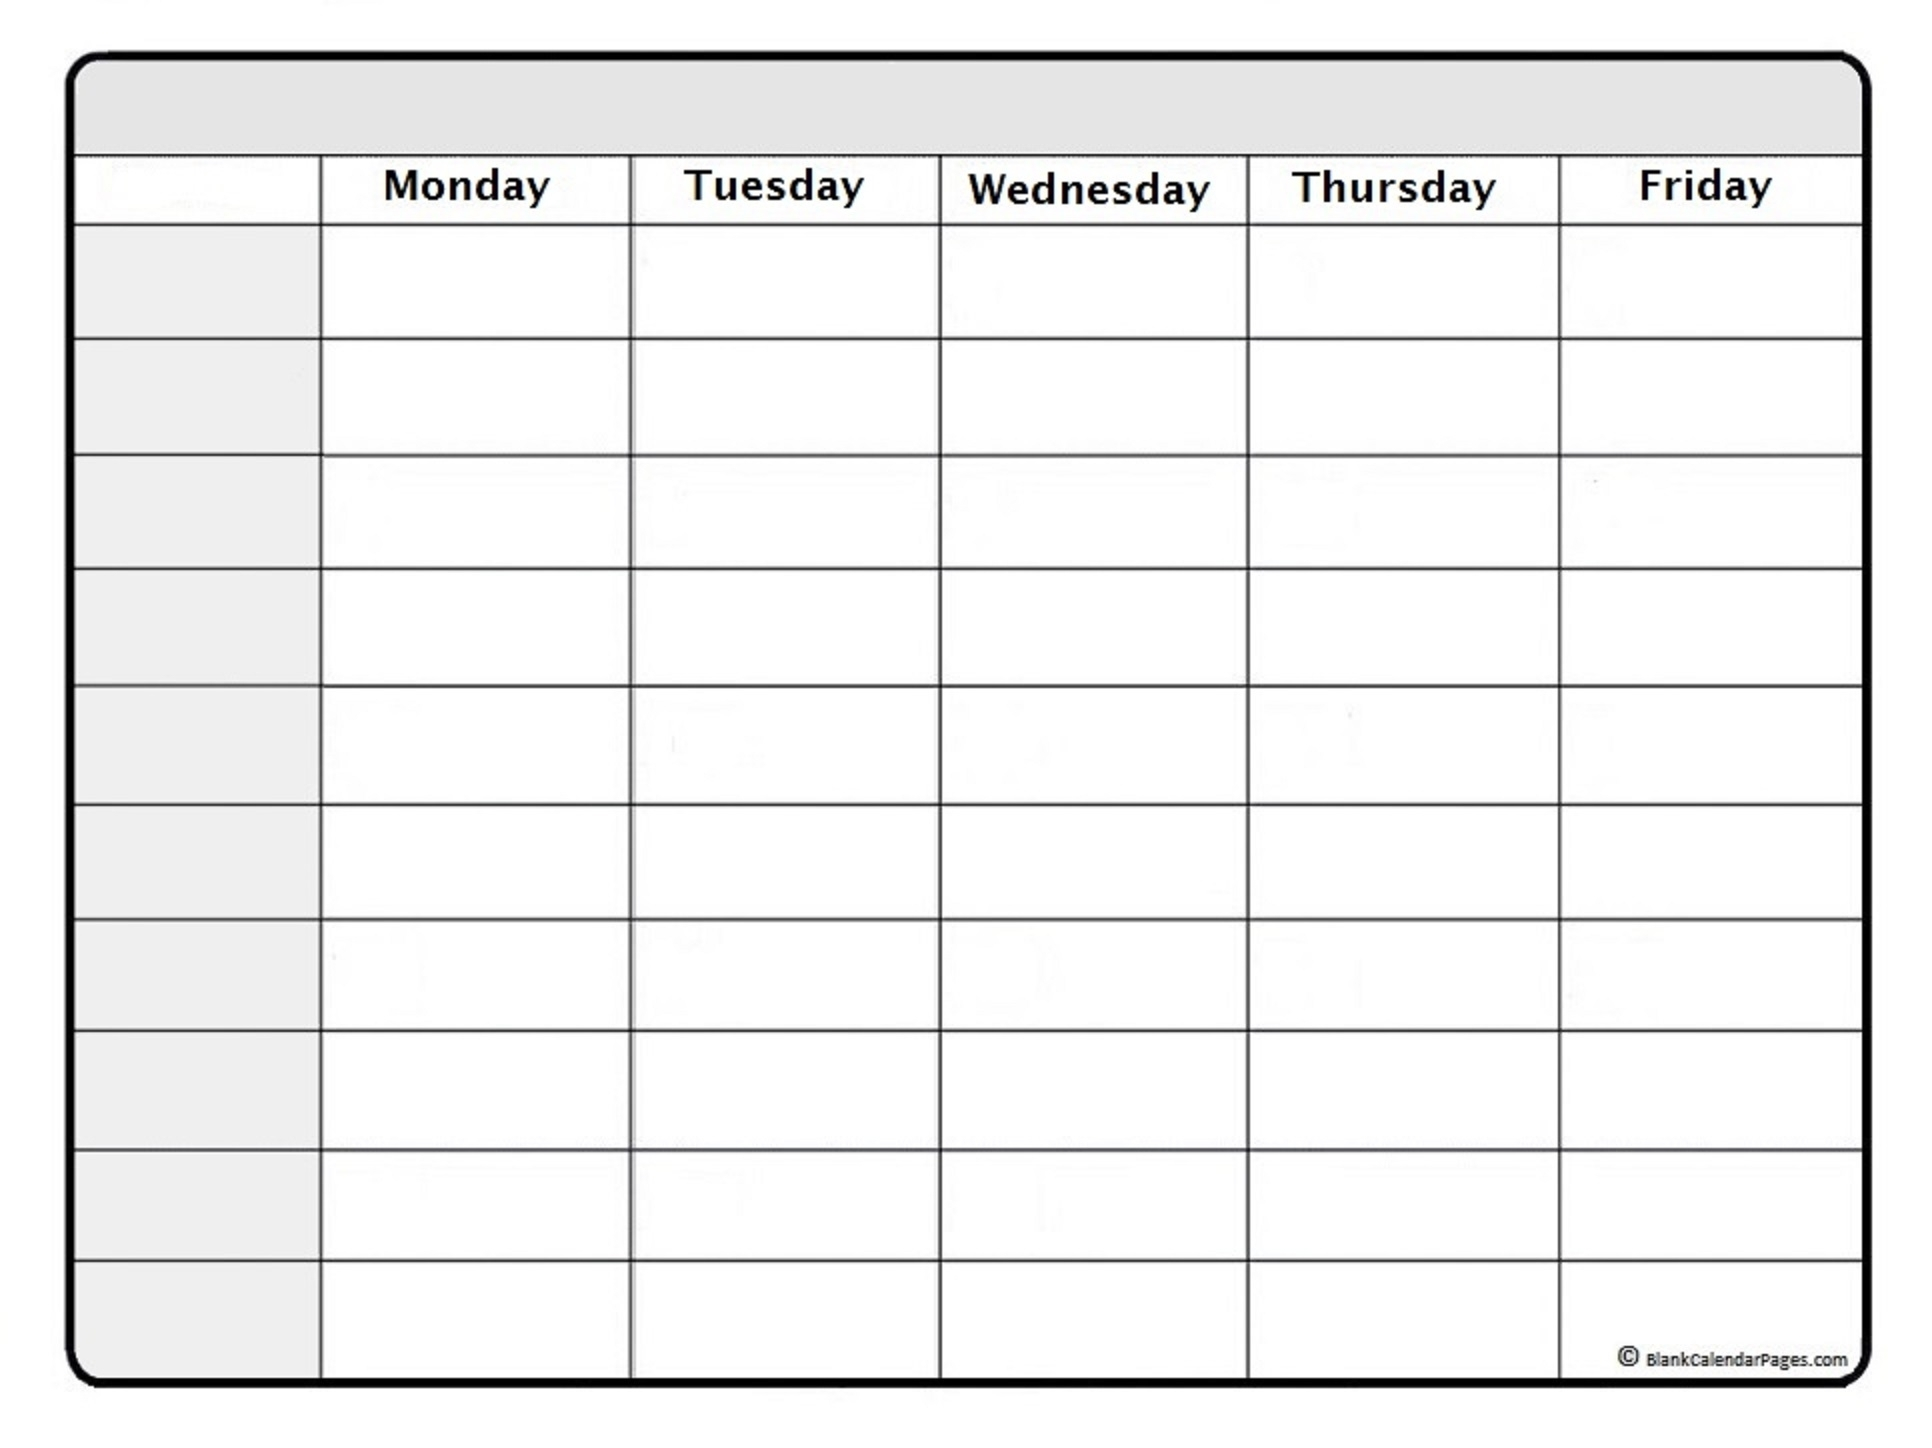 Schedule Template March Weekly Calendar Printable Free | Smorad pertaining to Blank Weekly Calendar Print Outs